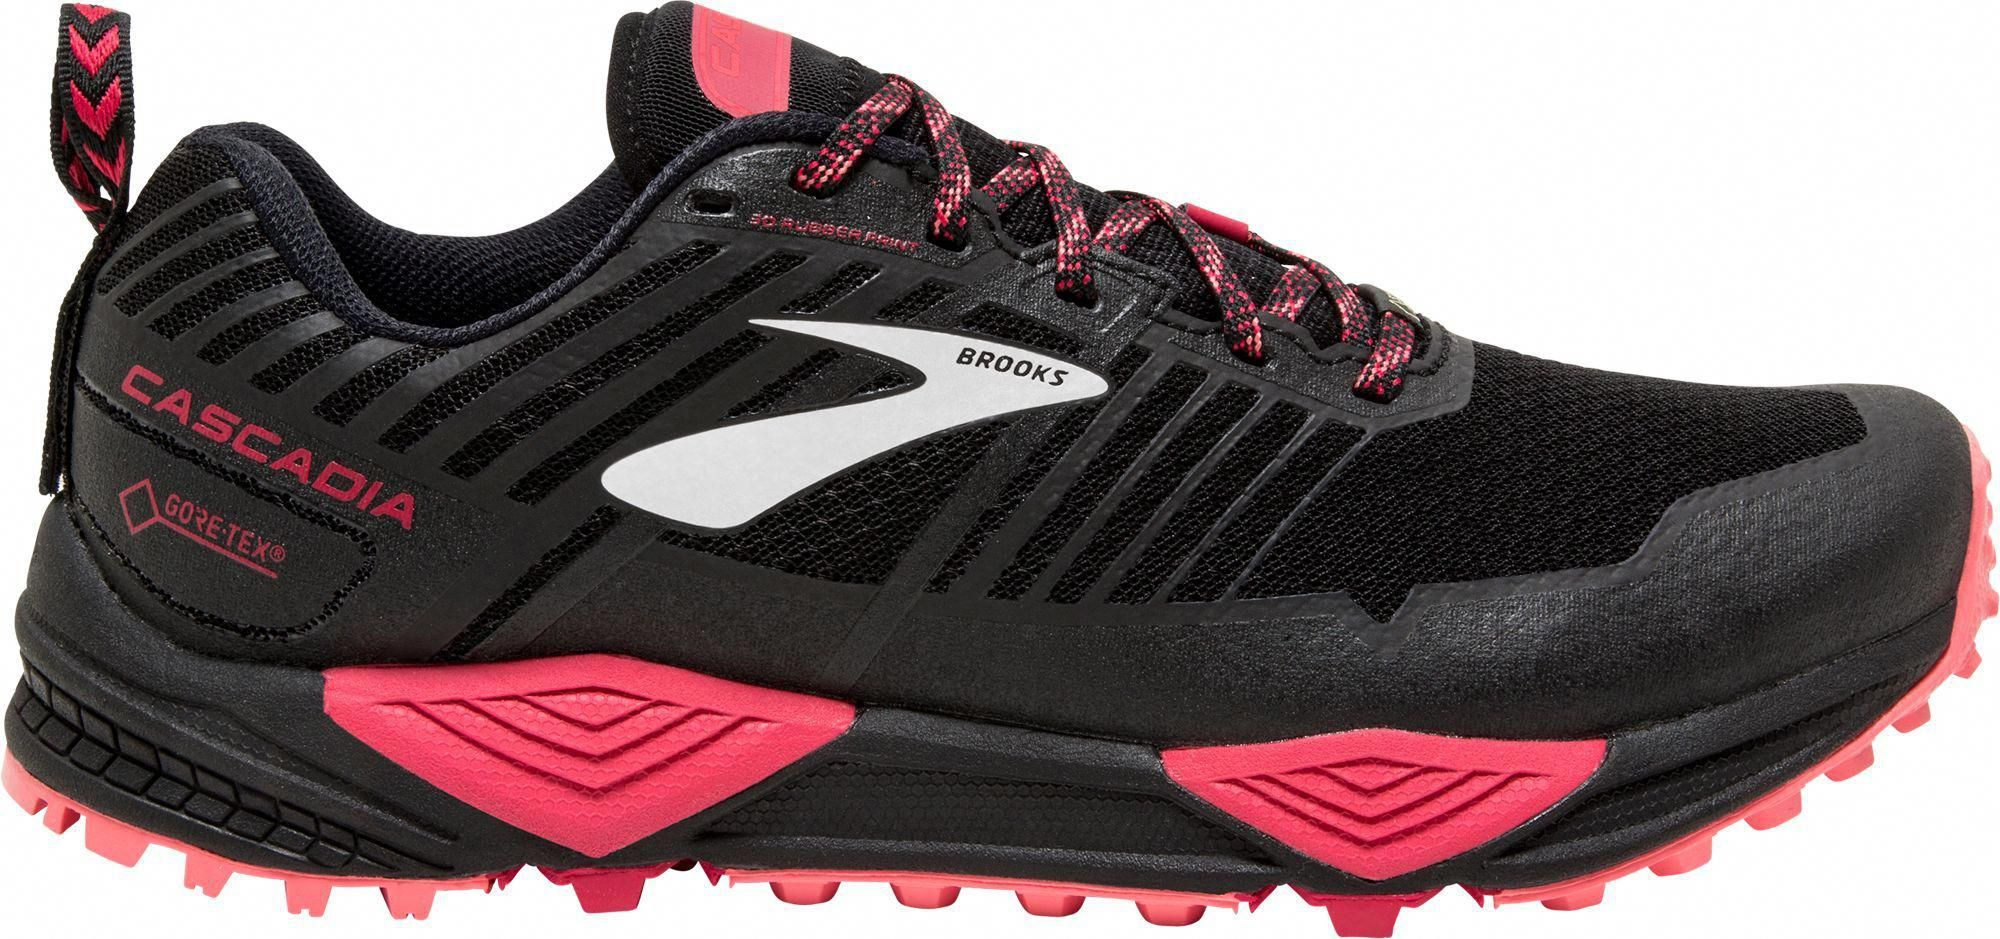 13++ Brooks trail running shoes womens ideas ideas in 2021